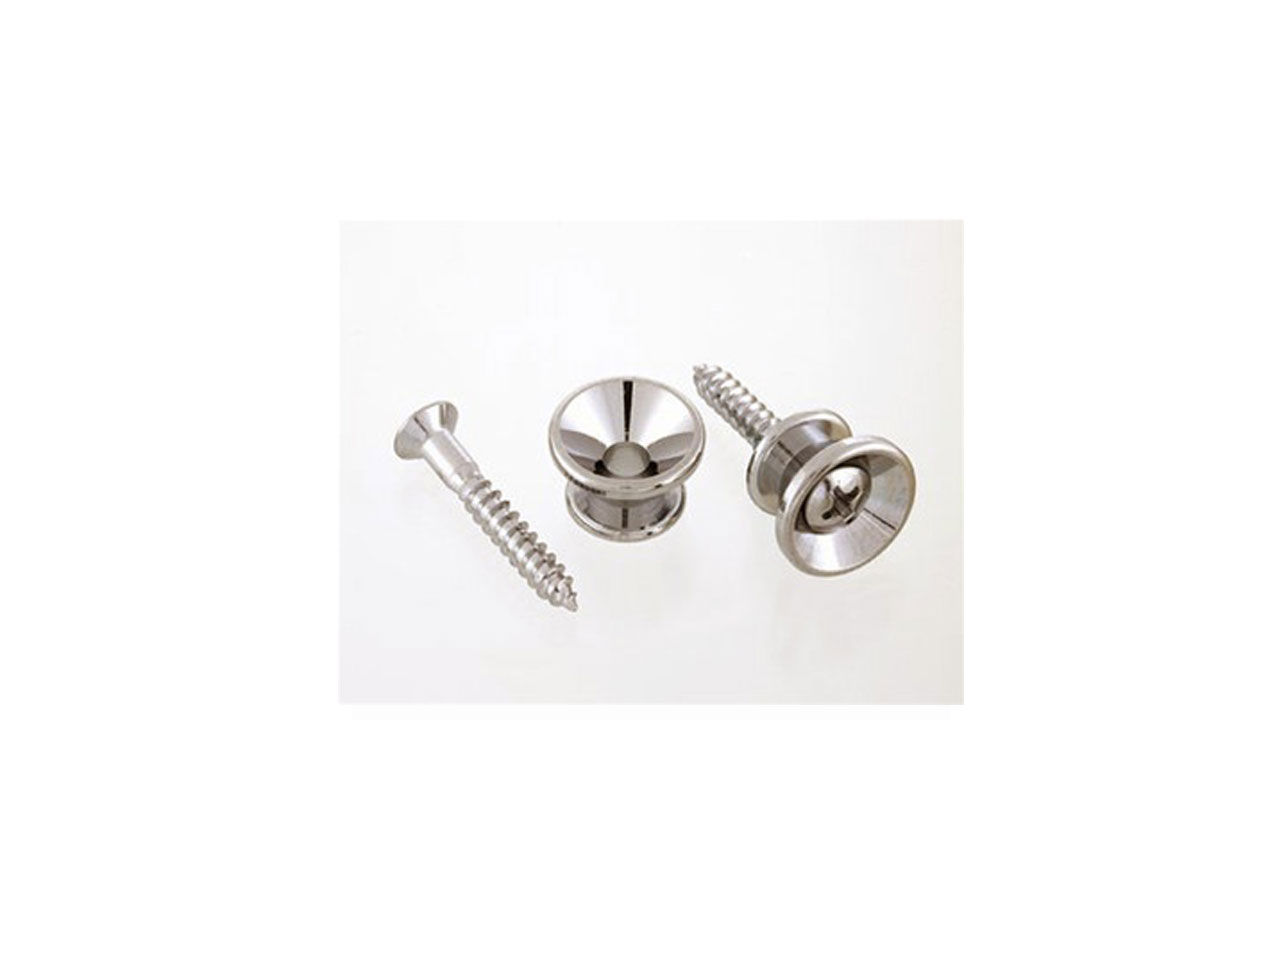 Allparts / AP-0670-001 Nickel Strap Buttons